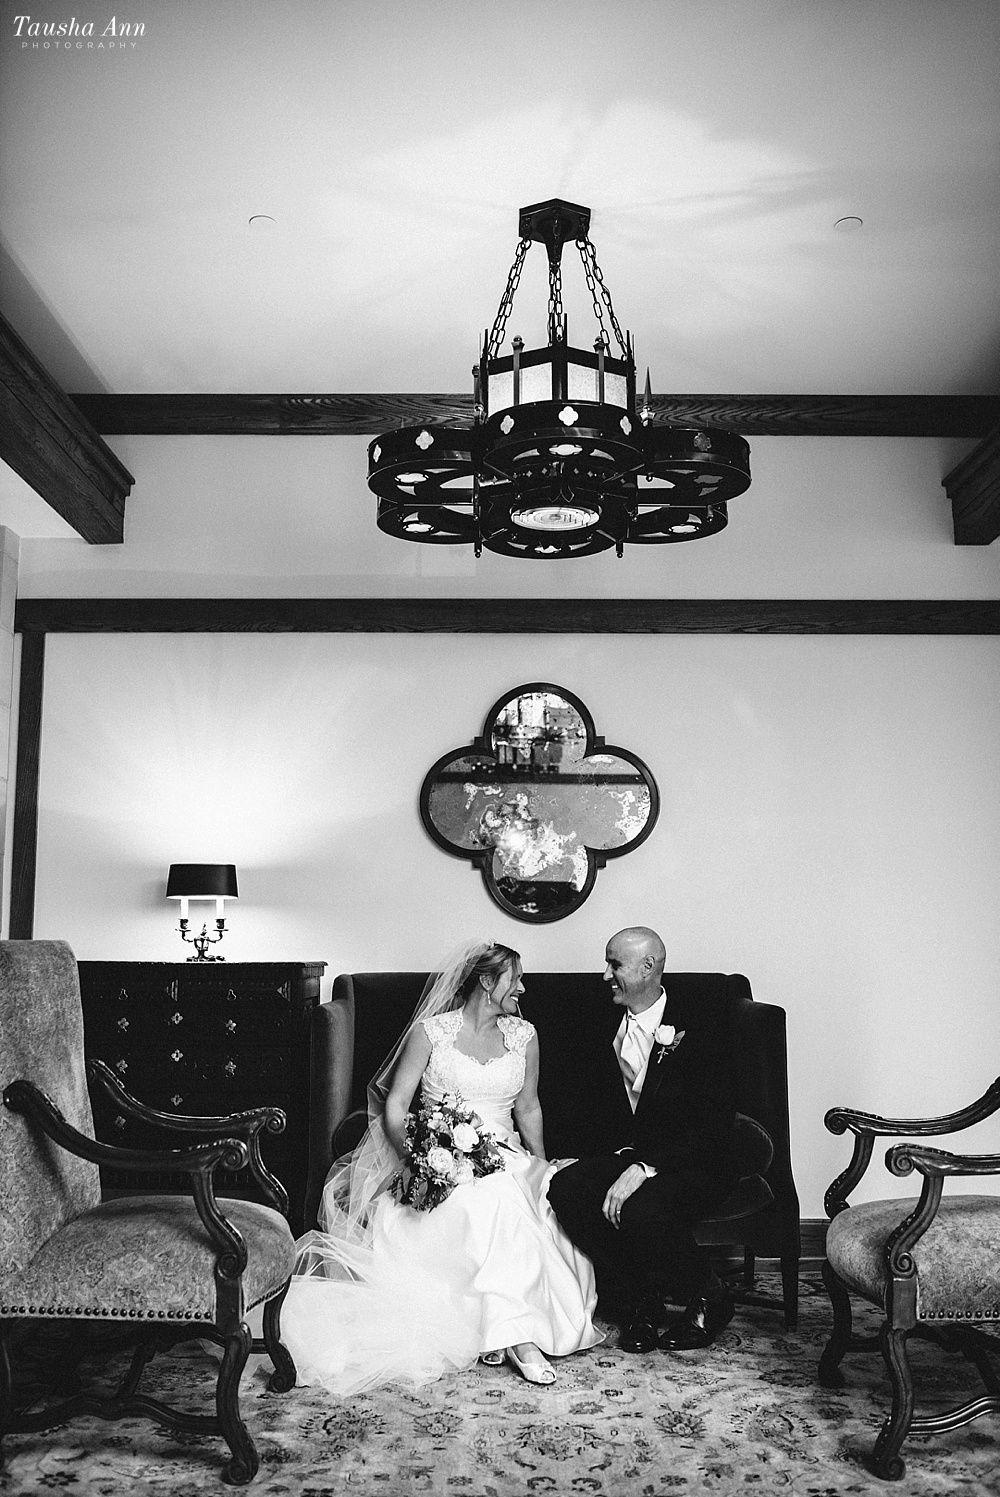 Portraits of Bride and Groom in Black and white sitting on couch with epic lighting fixture